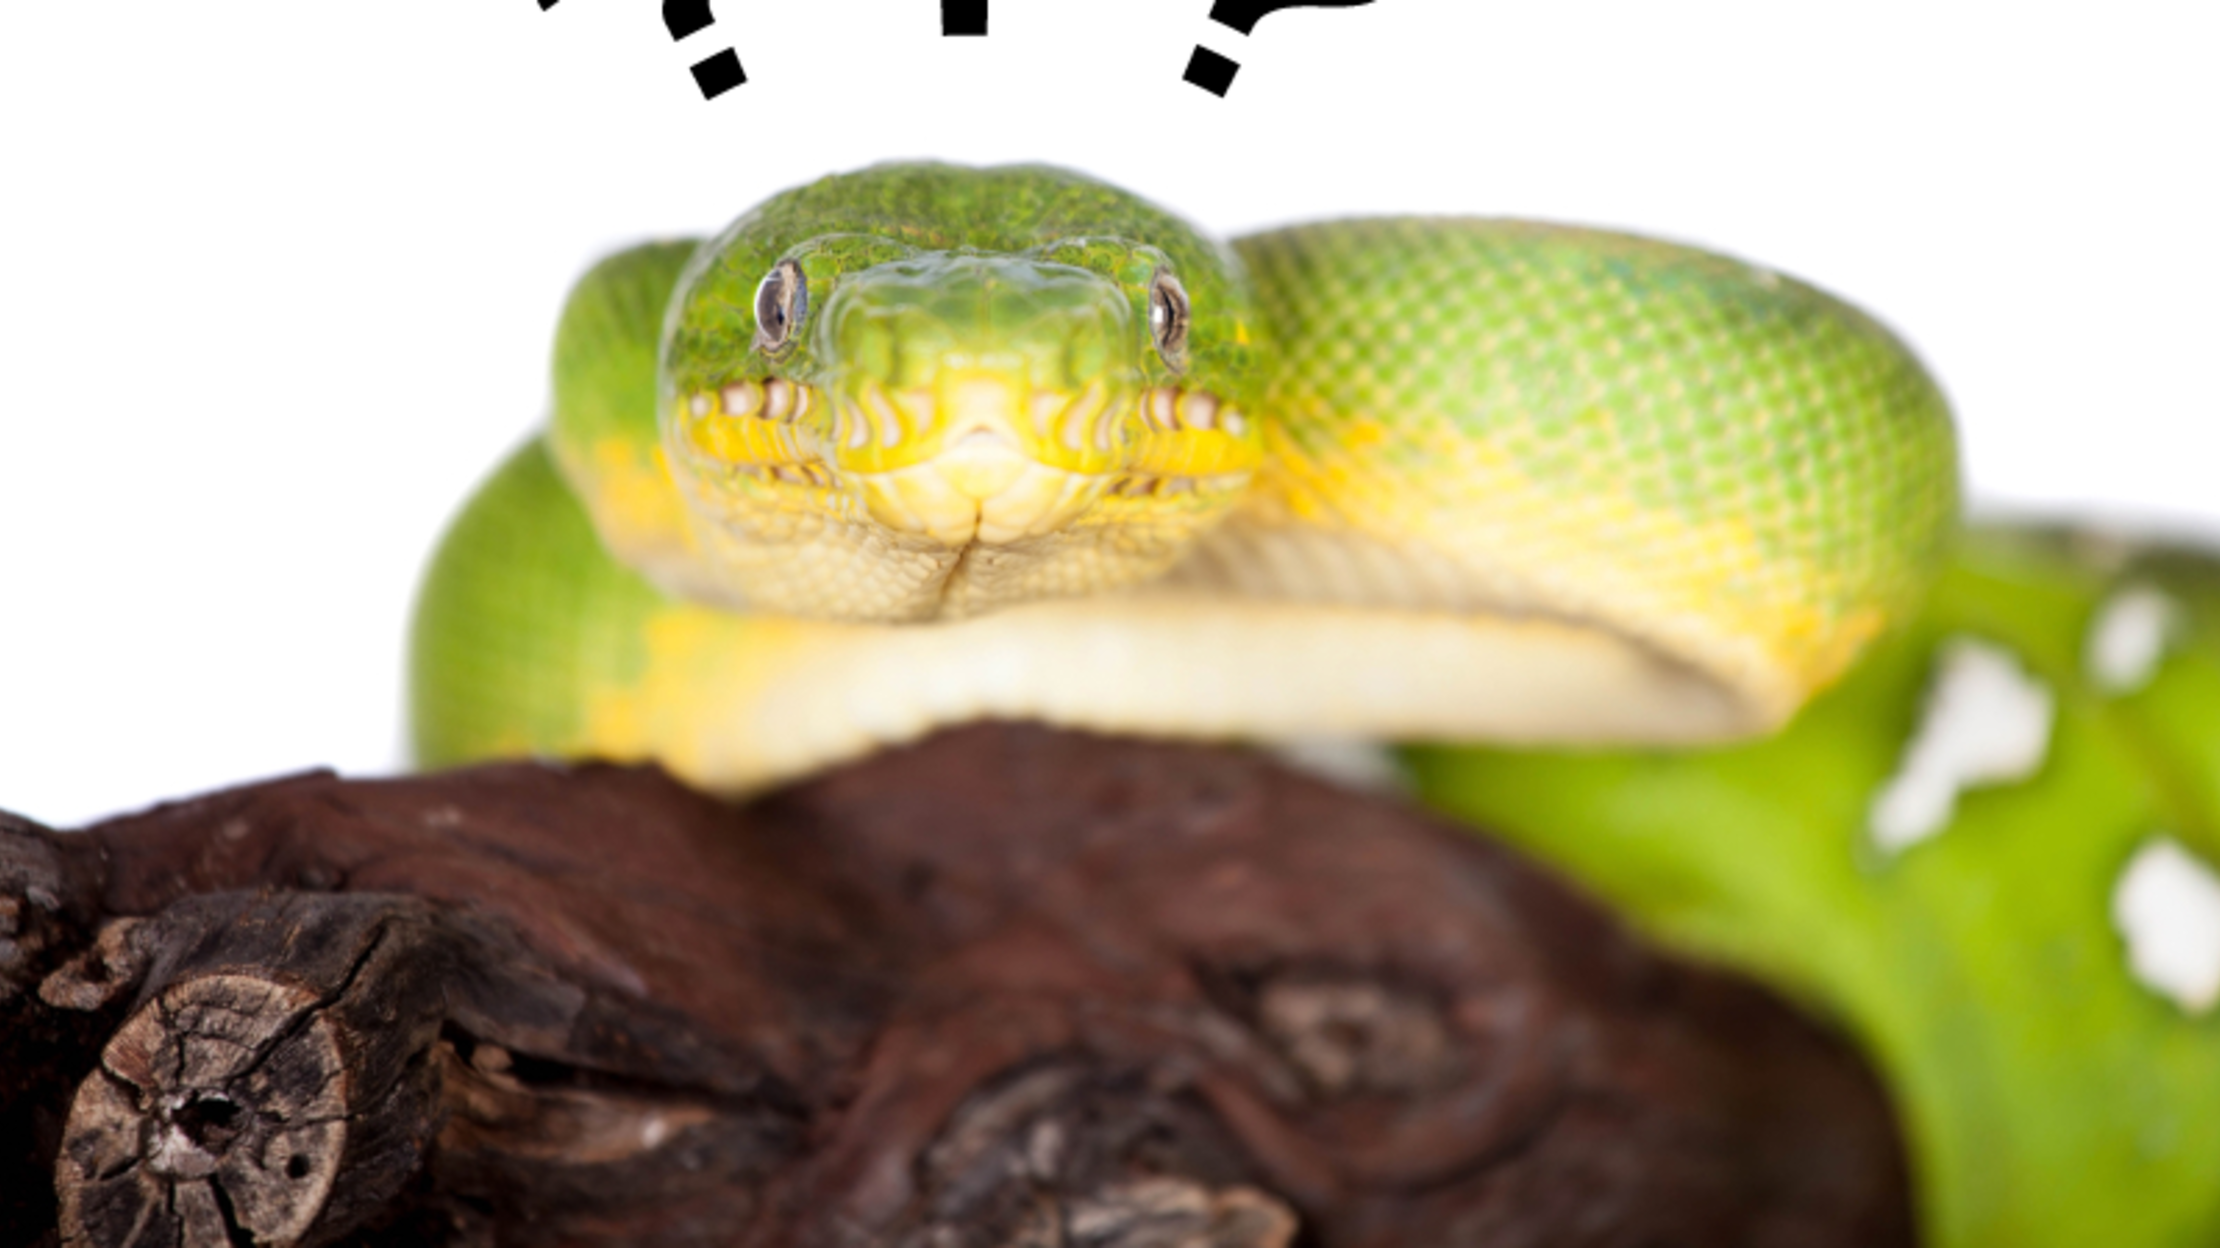 What's the Difference Between a Boa and a Python? | Mental Floss